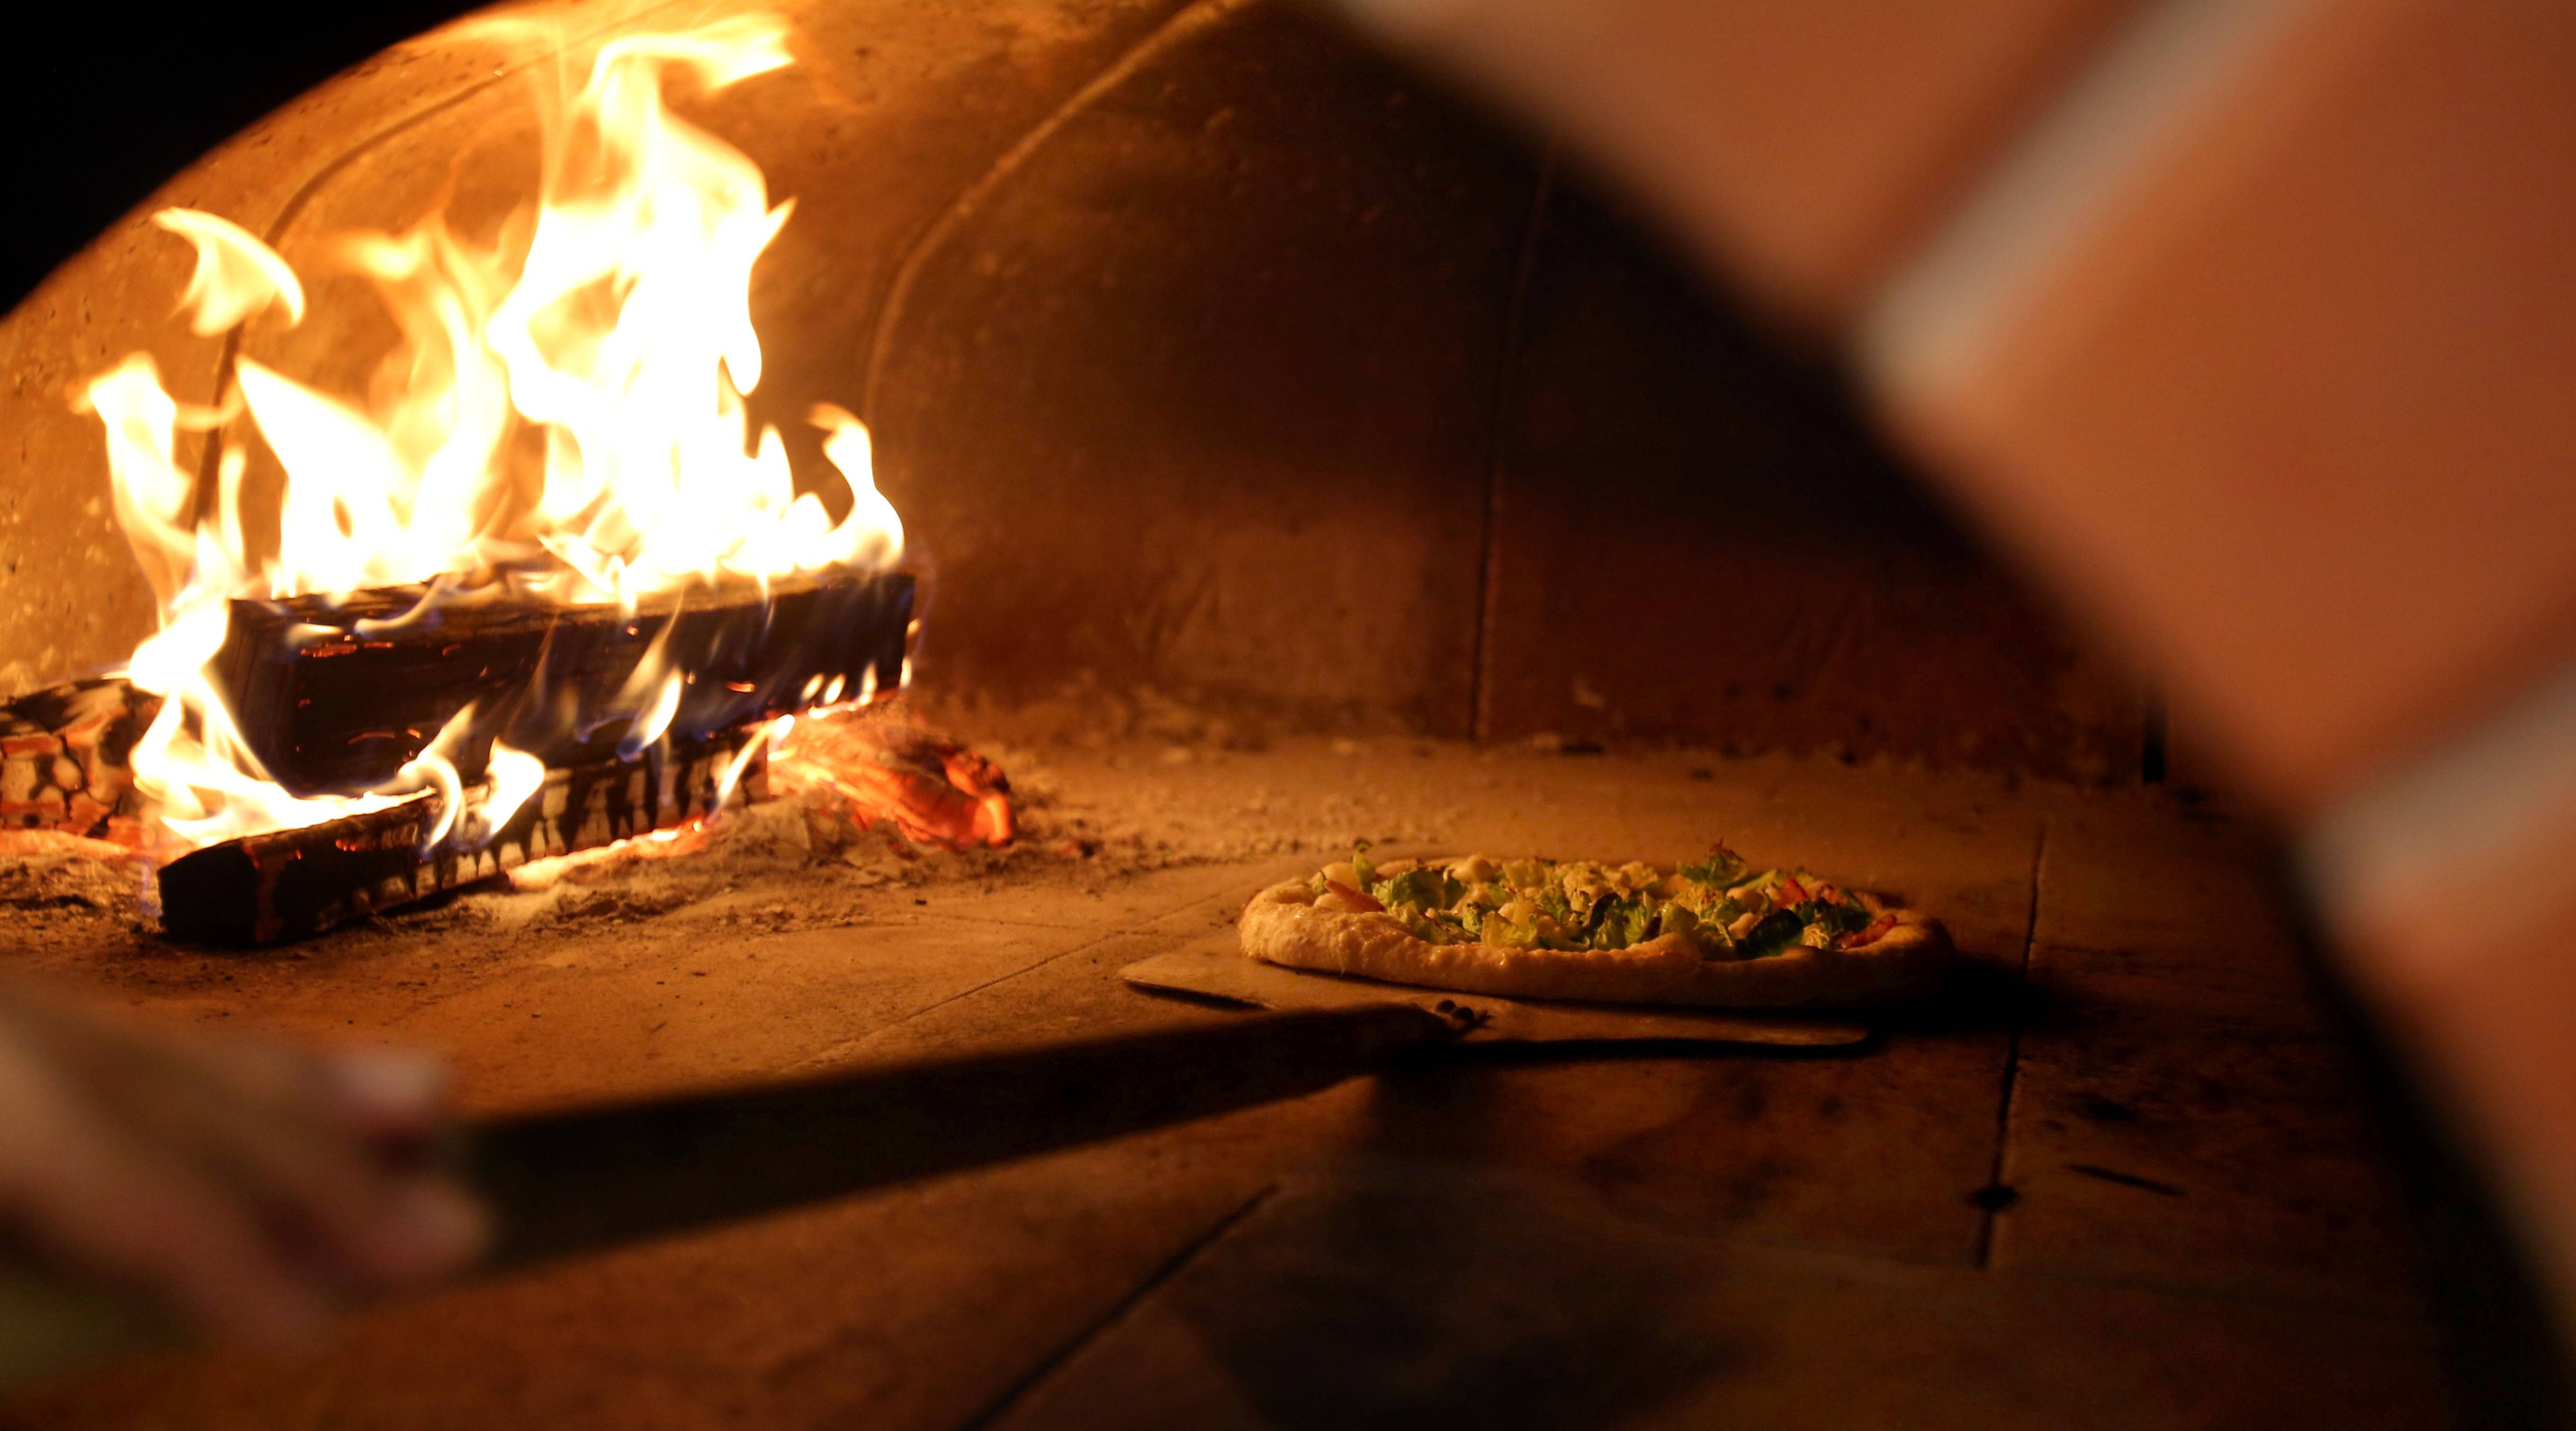 John Durning uses a wood-fired oven that can reach 900 degrees to make pizza at his new Pizzeria DeVille in Libertyville.